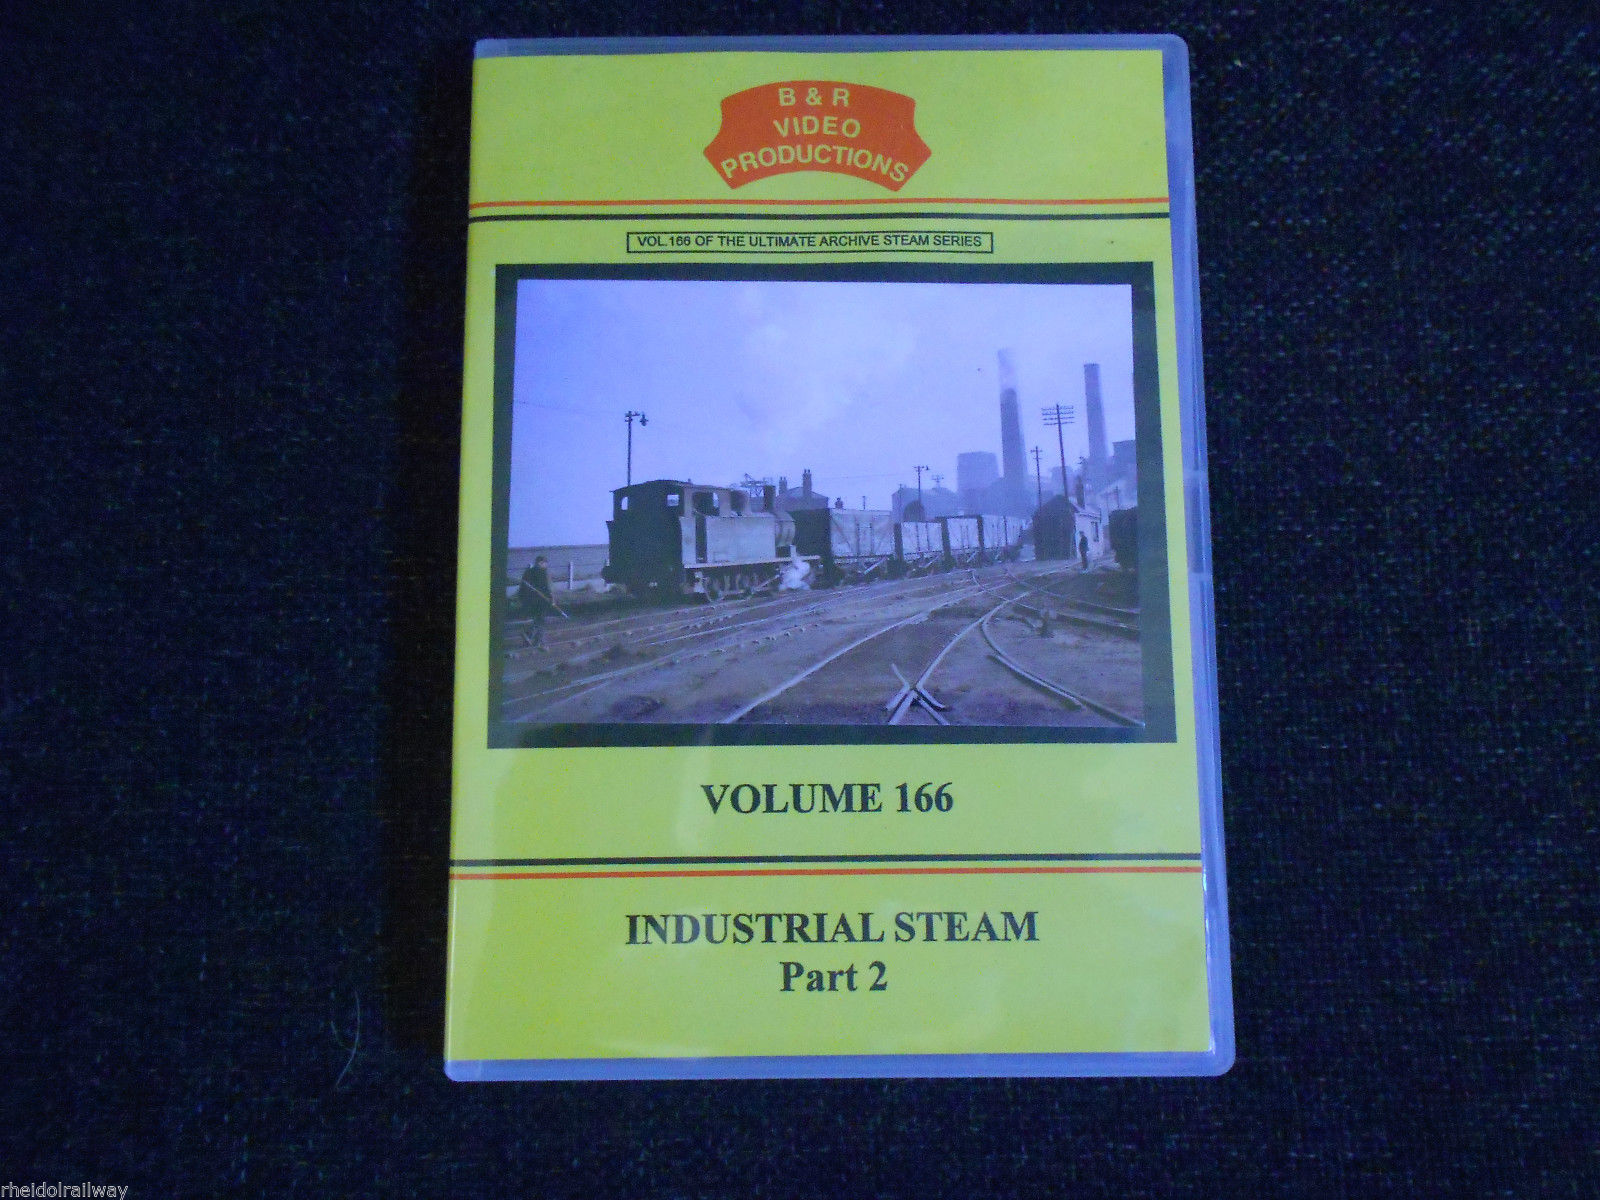 North East, Midlands, Industrial Steam Part 2, B&R VOLUME 166 DVD